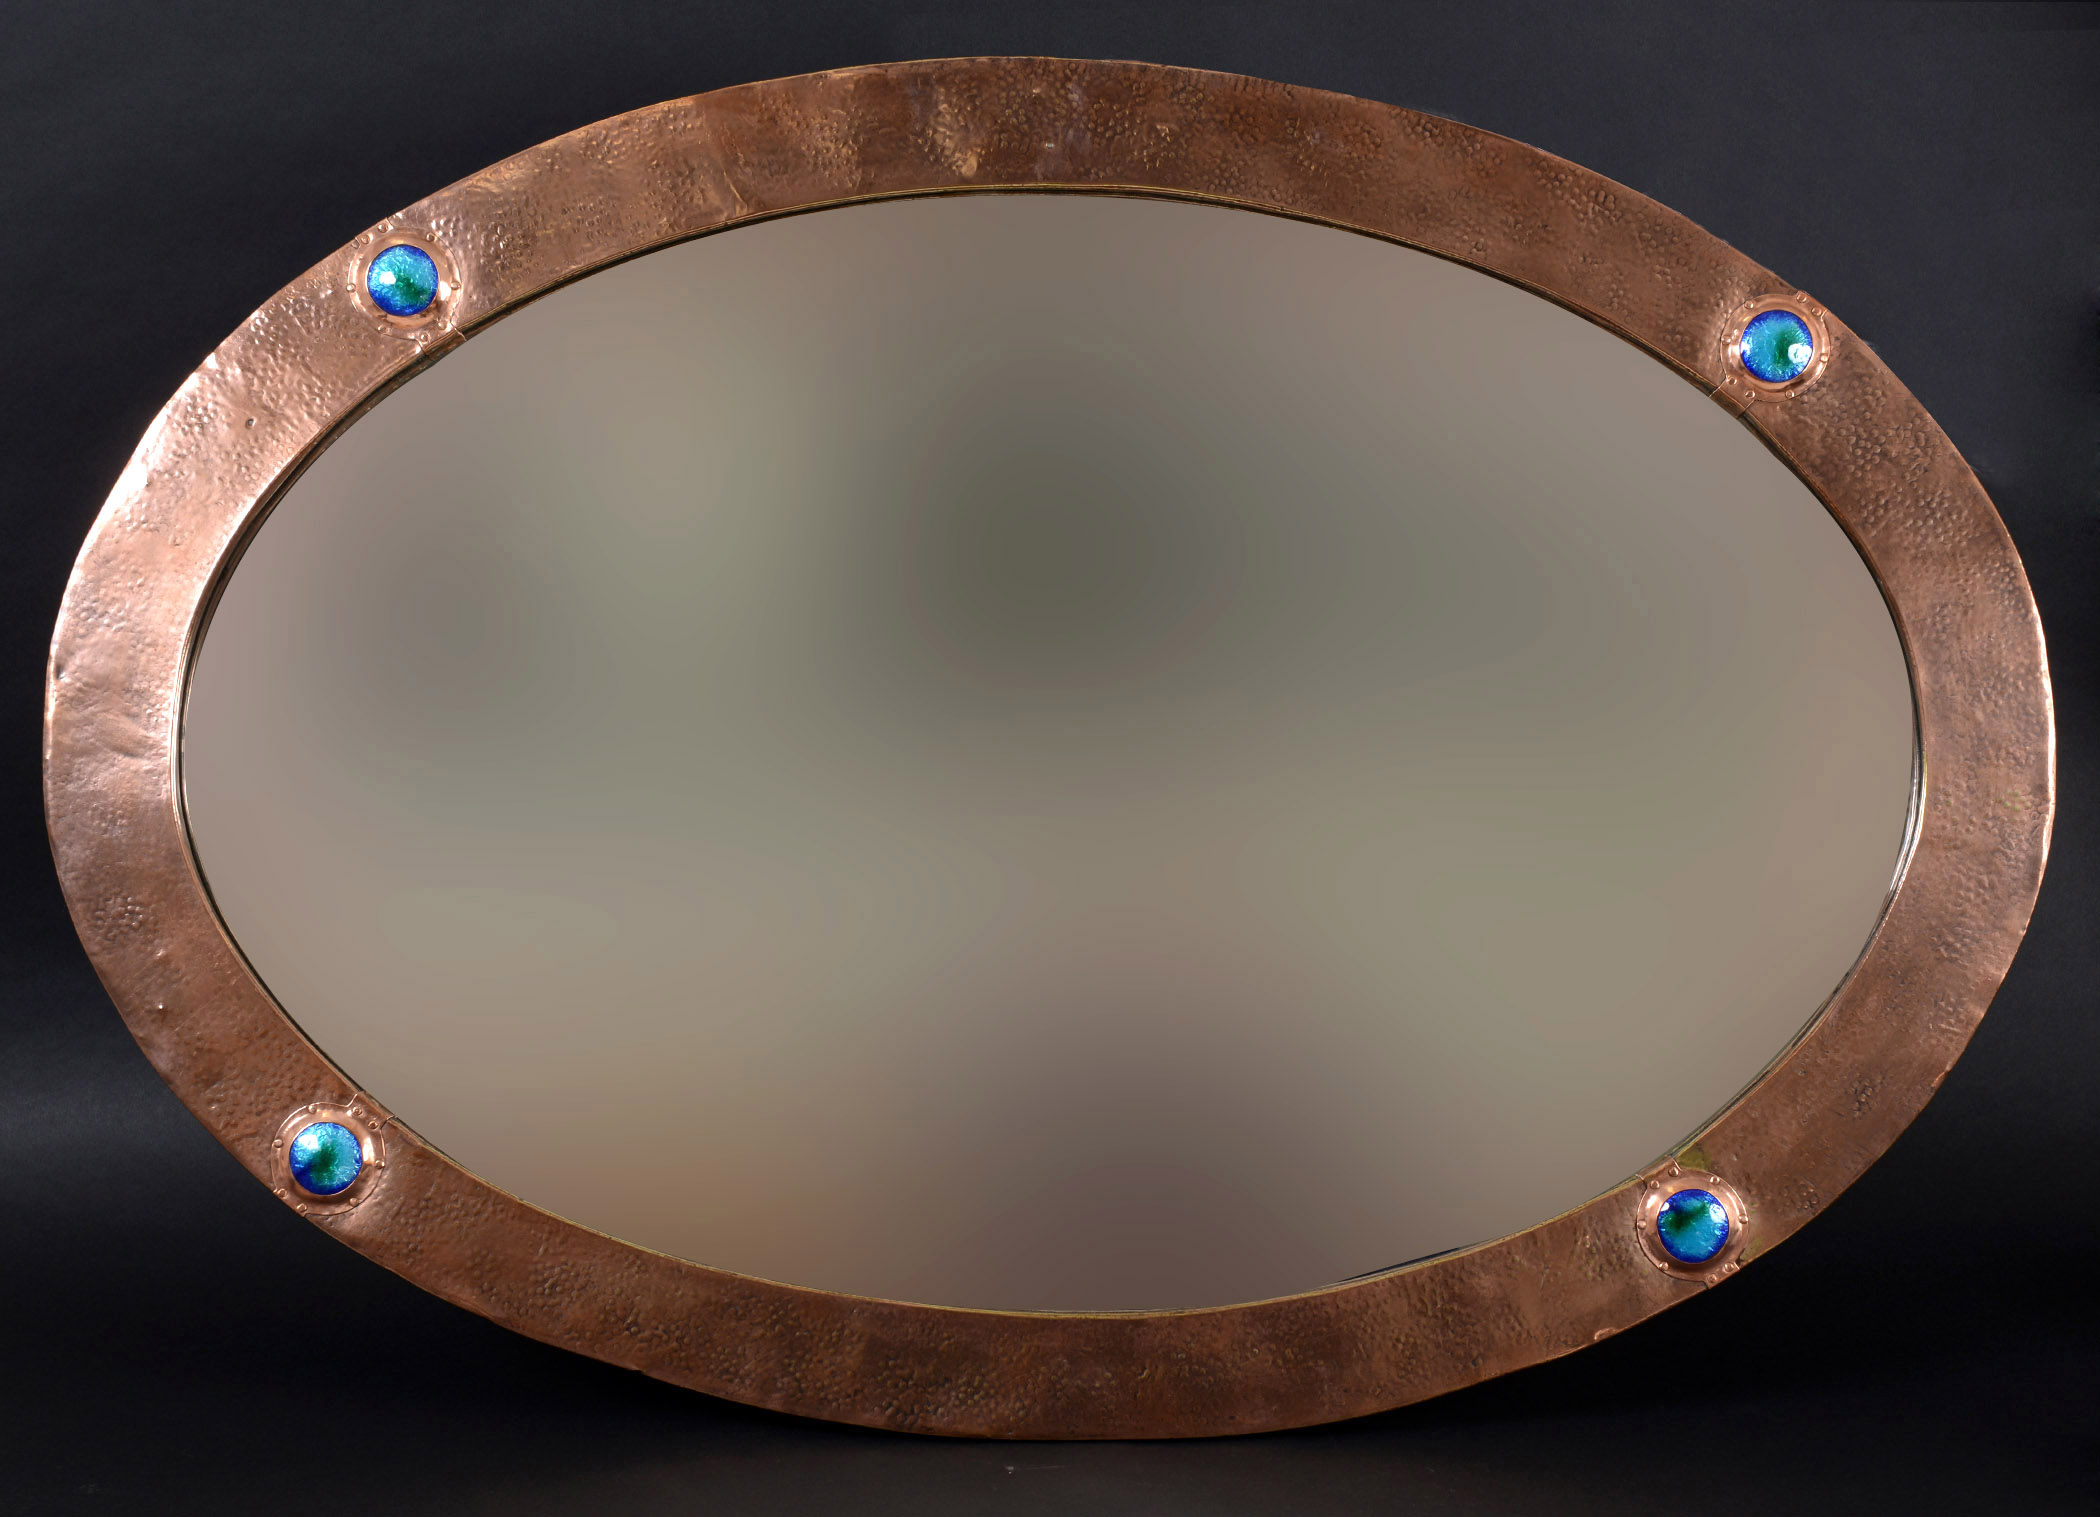 Arts and crafts mirrors - Lot 1304 Large Arts Crafts Mirror A Large Oval Copper Mirror With A